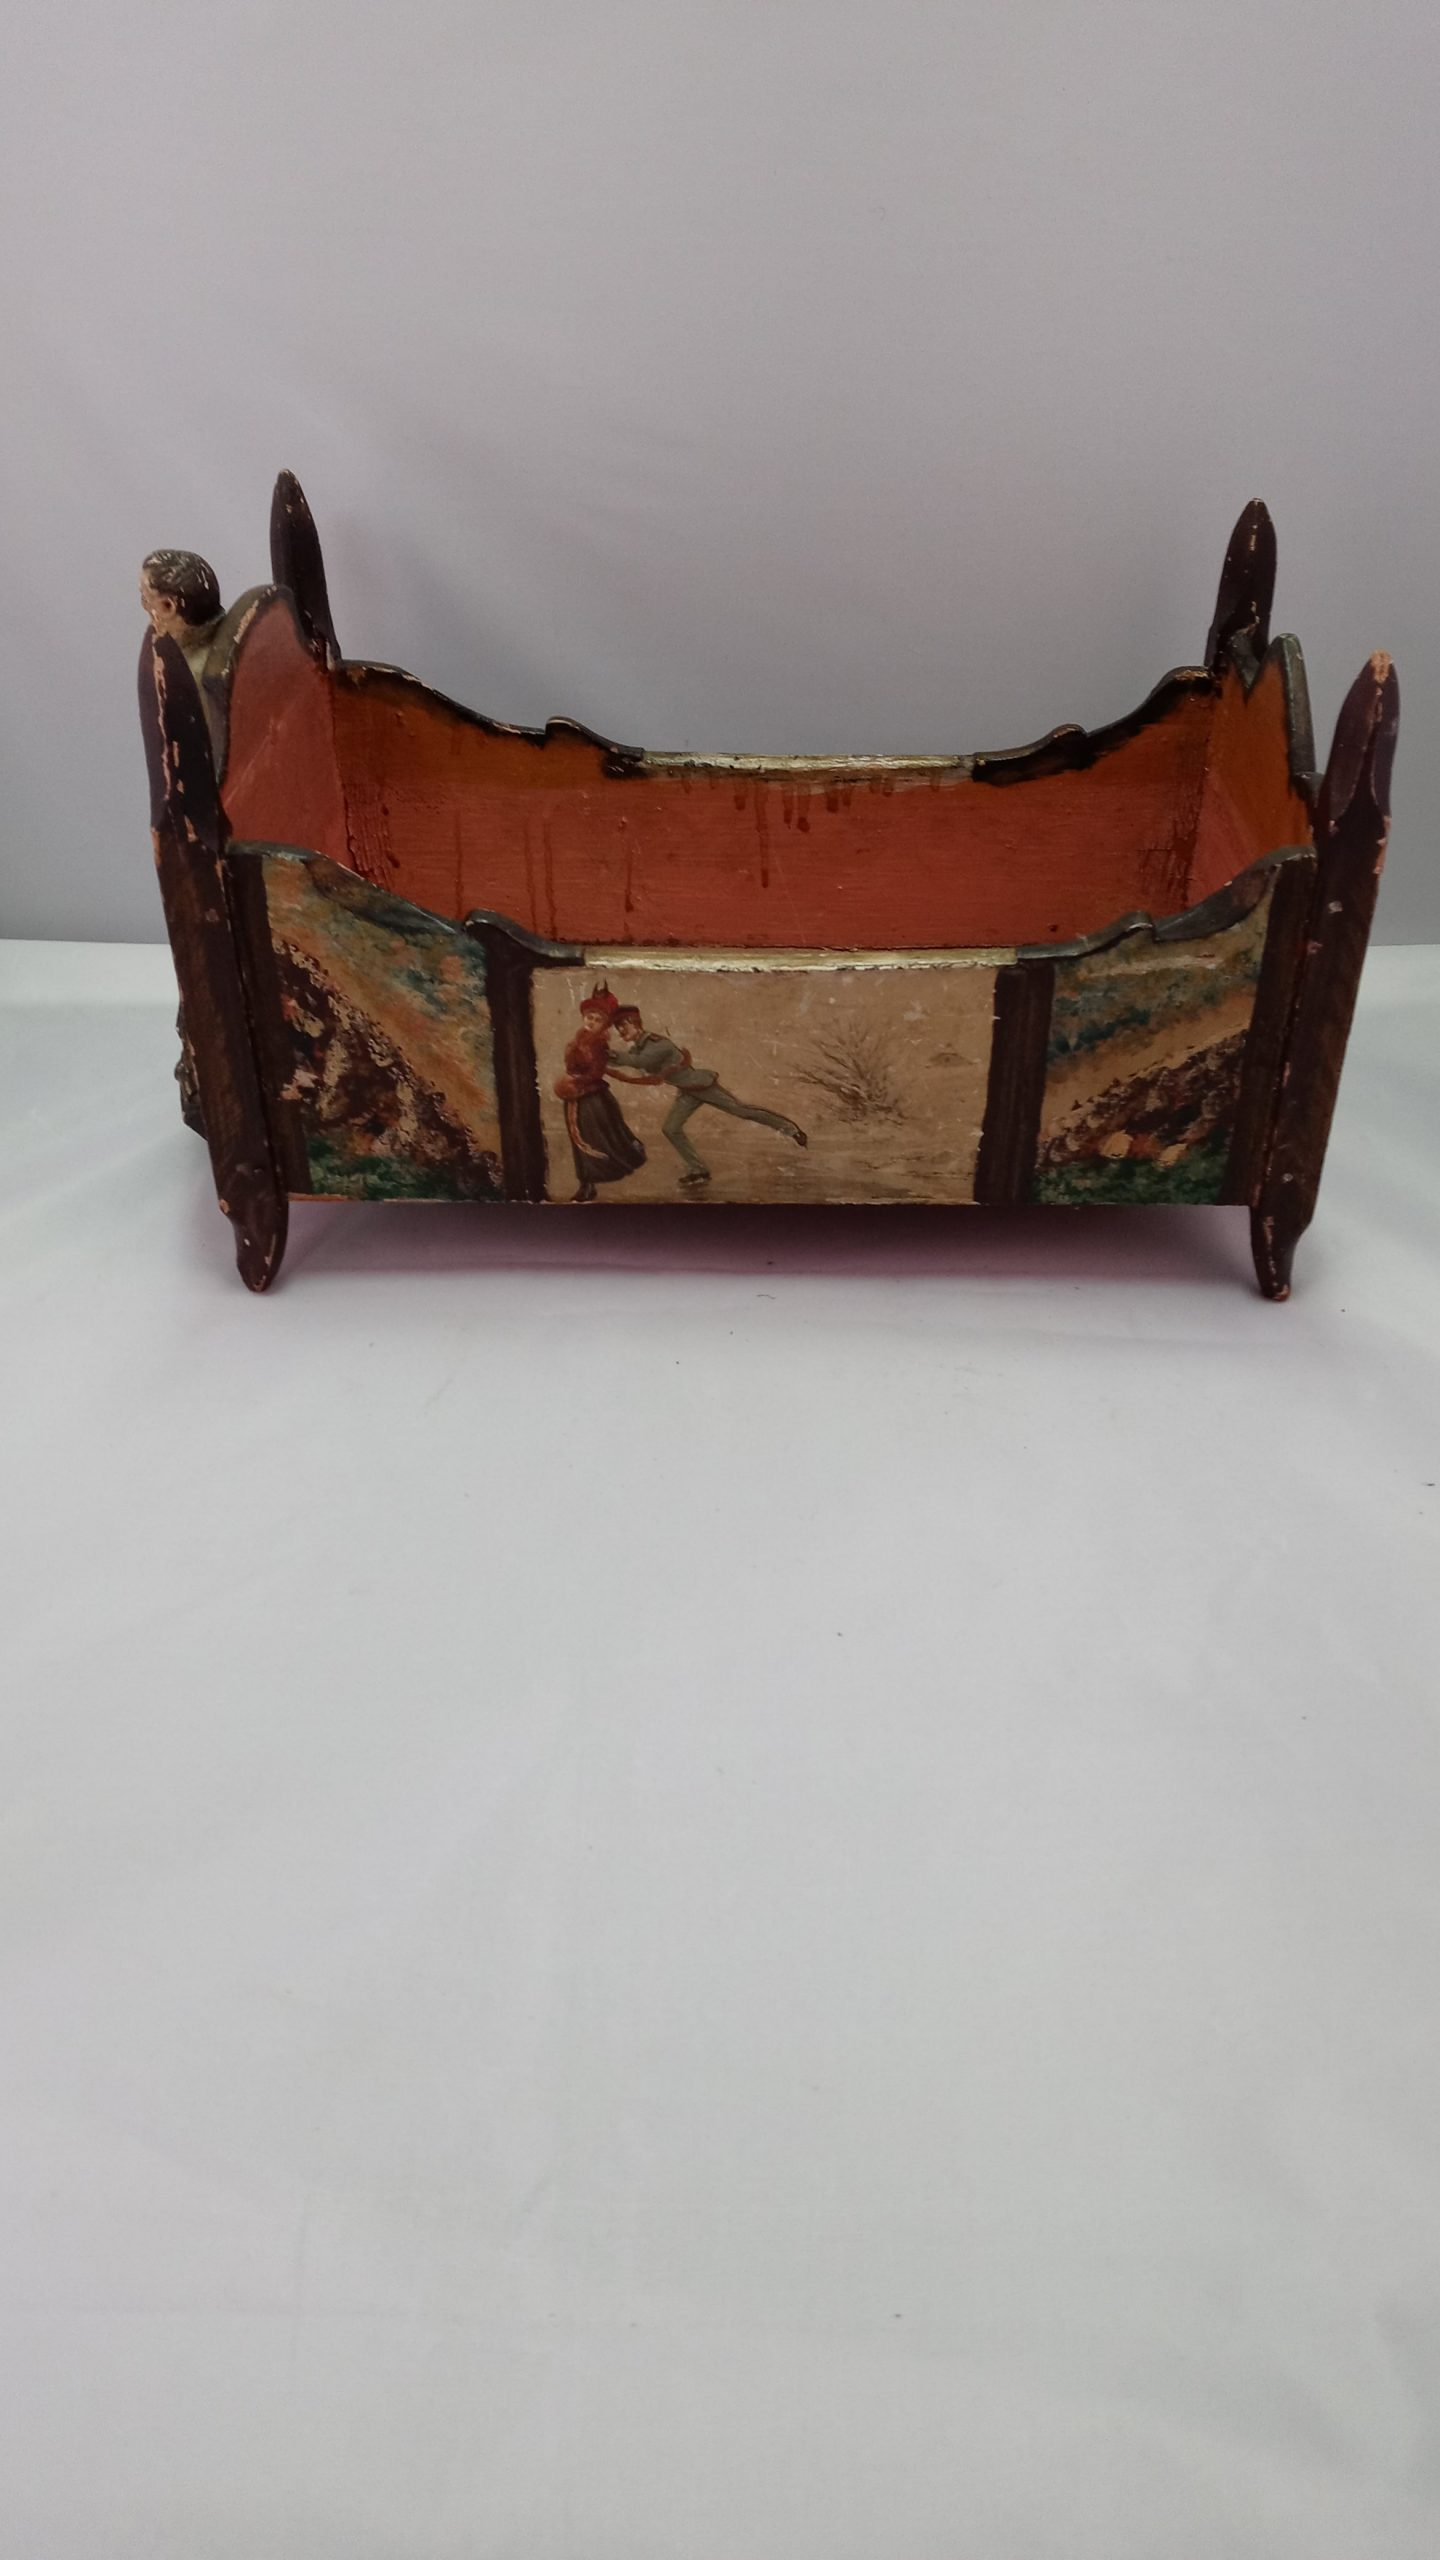 15-25504 Childs Doll Bed Image